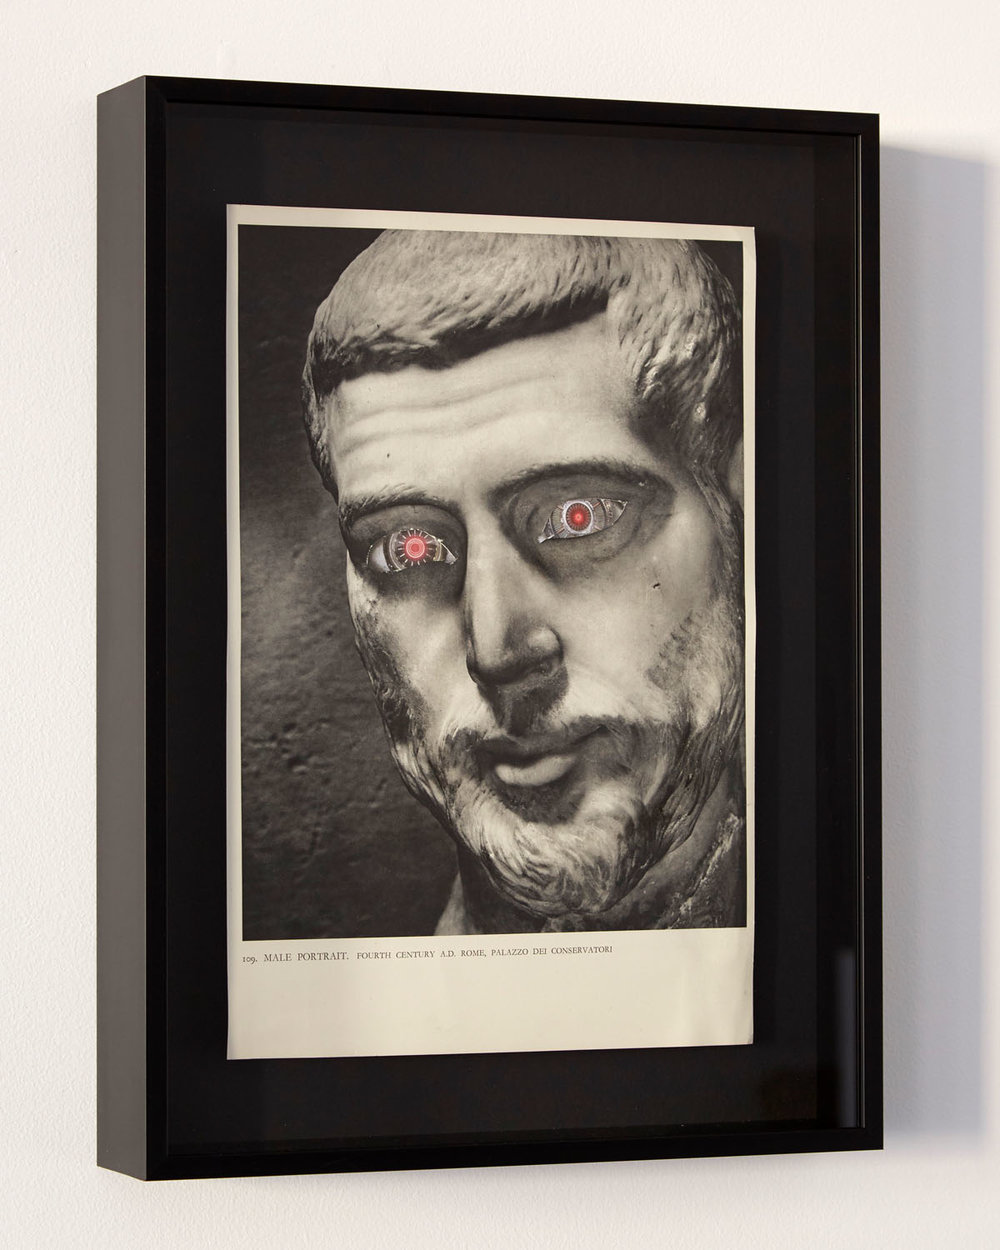 Rob Cherry  Male Portrait Fourth Century , 2018 Framed collage 320 x 220 mm $900 incl. GST  _______